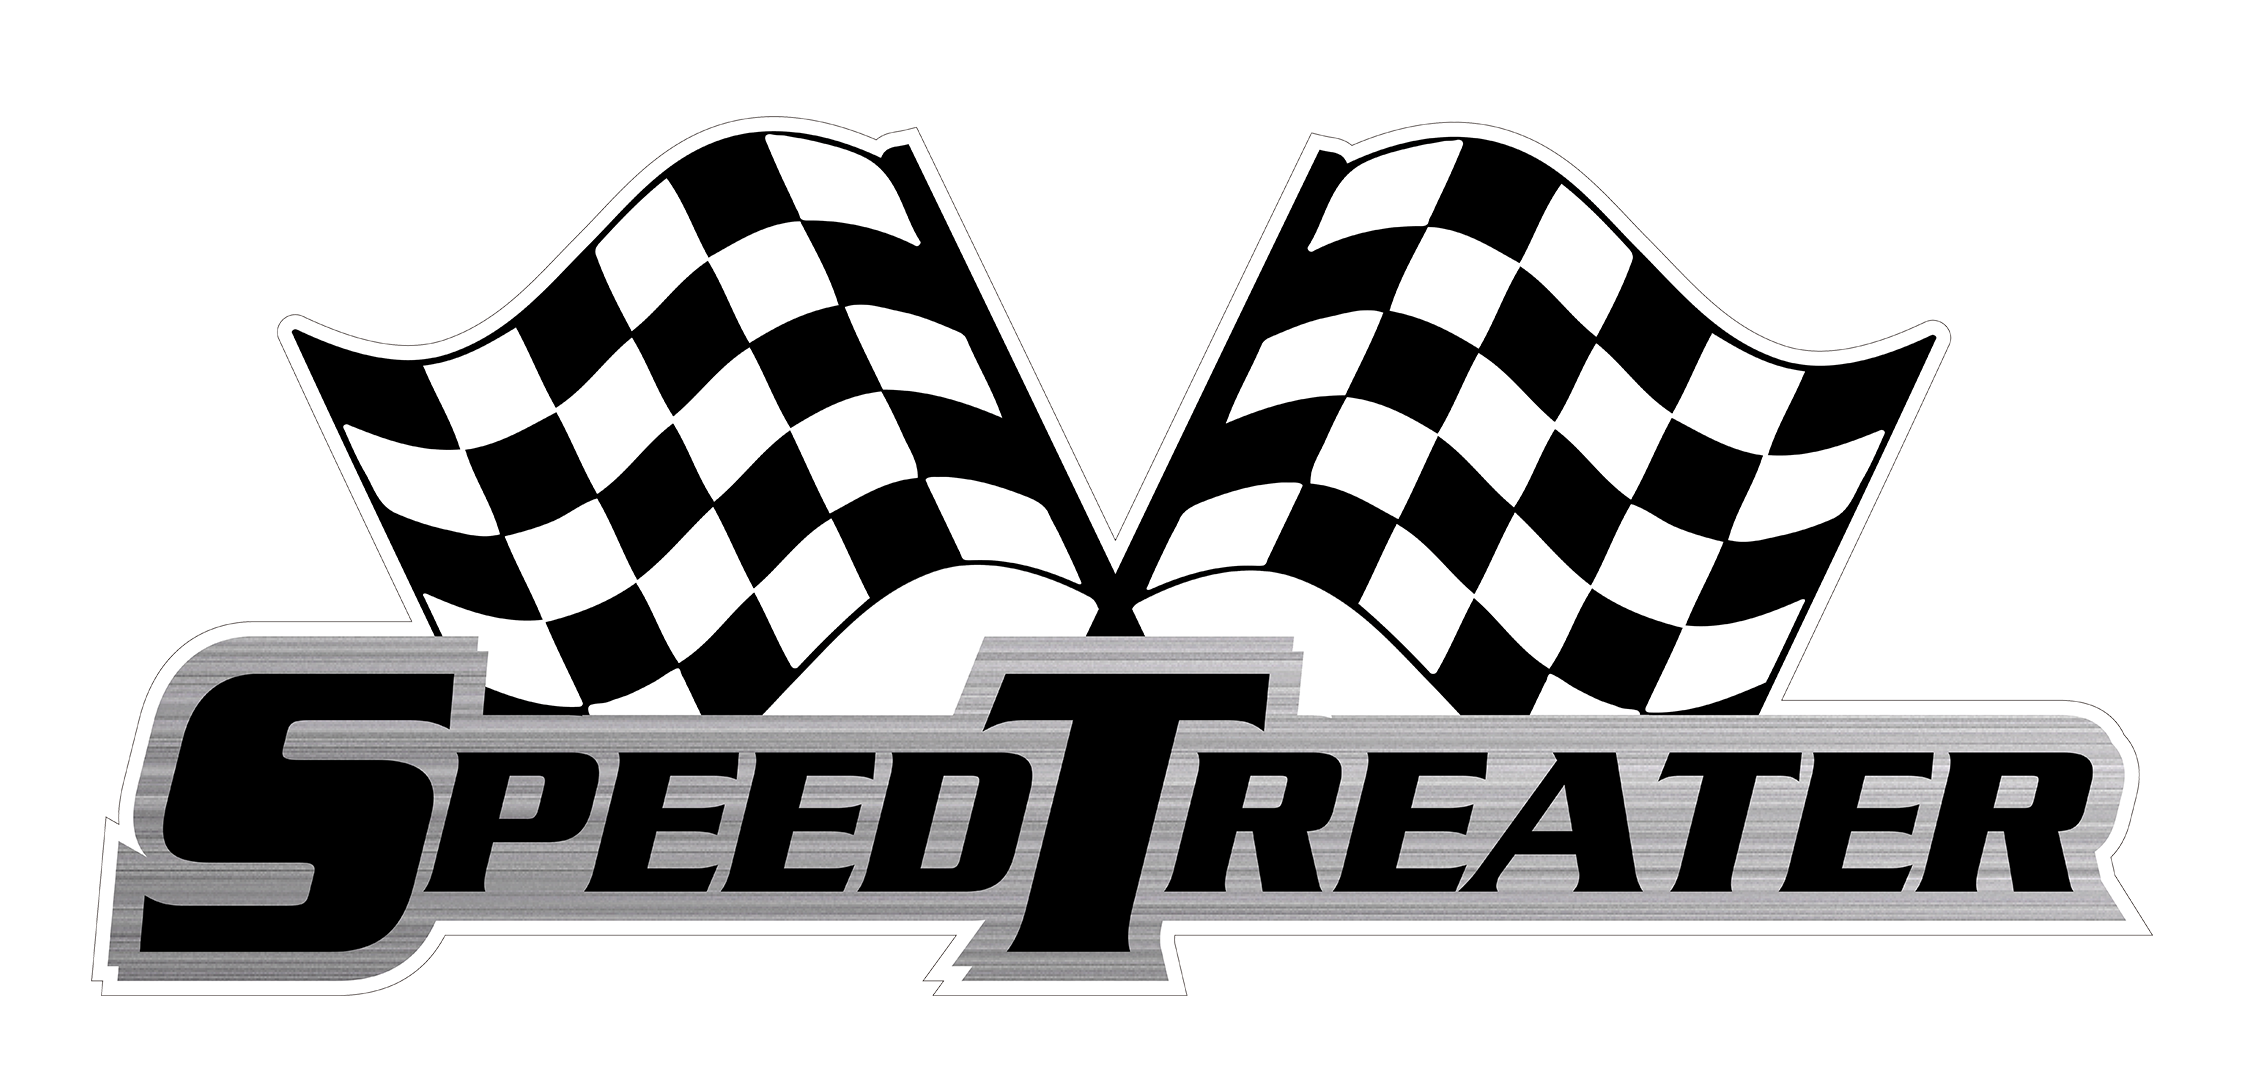 speedtreater-logo